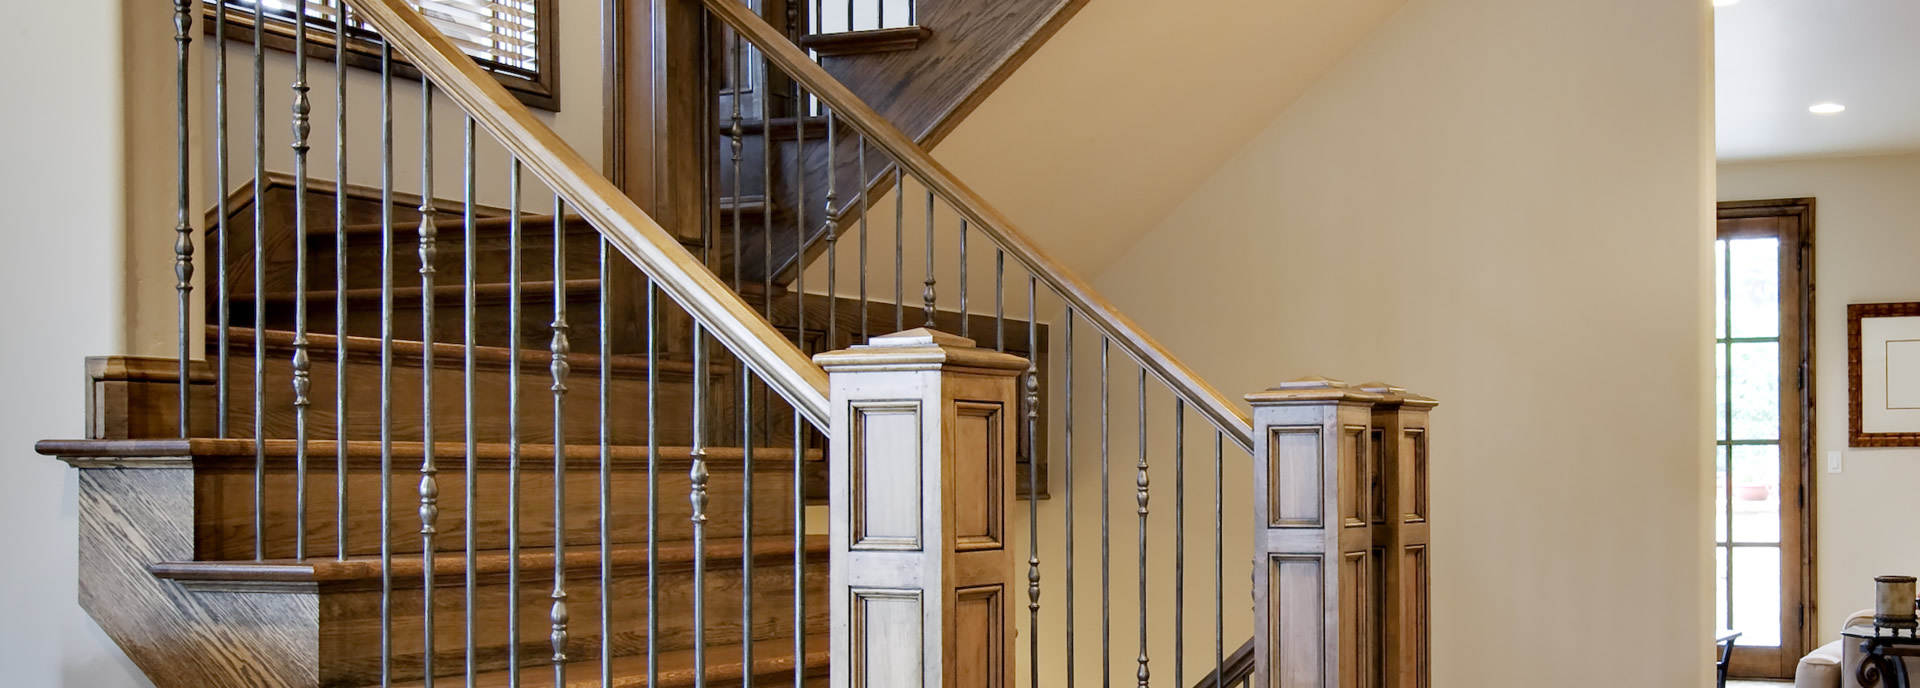 Rustic Staircase: Functional Design with Aesthetic Quality Alpharetta, GA